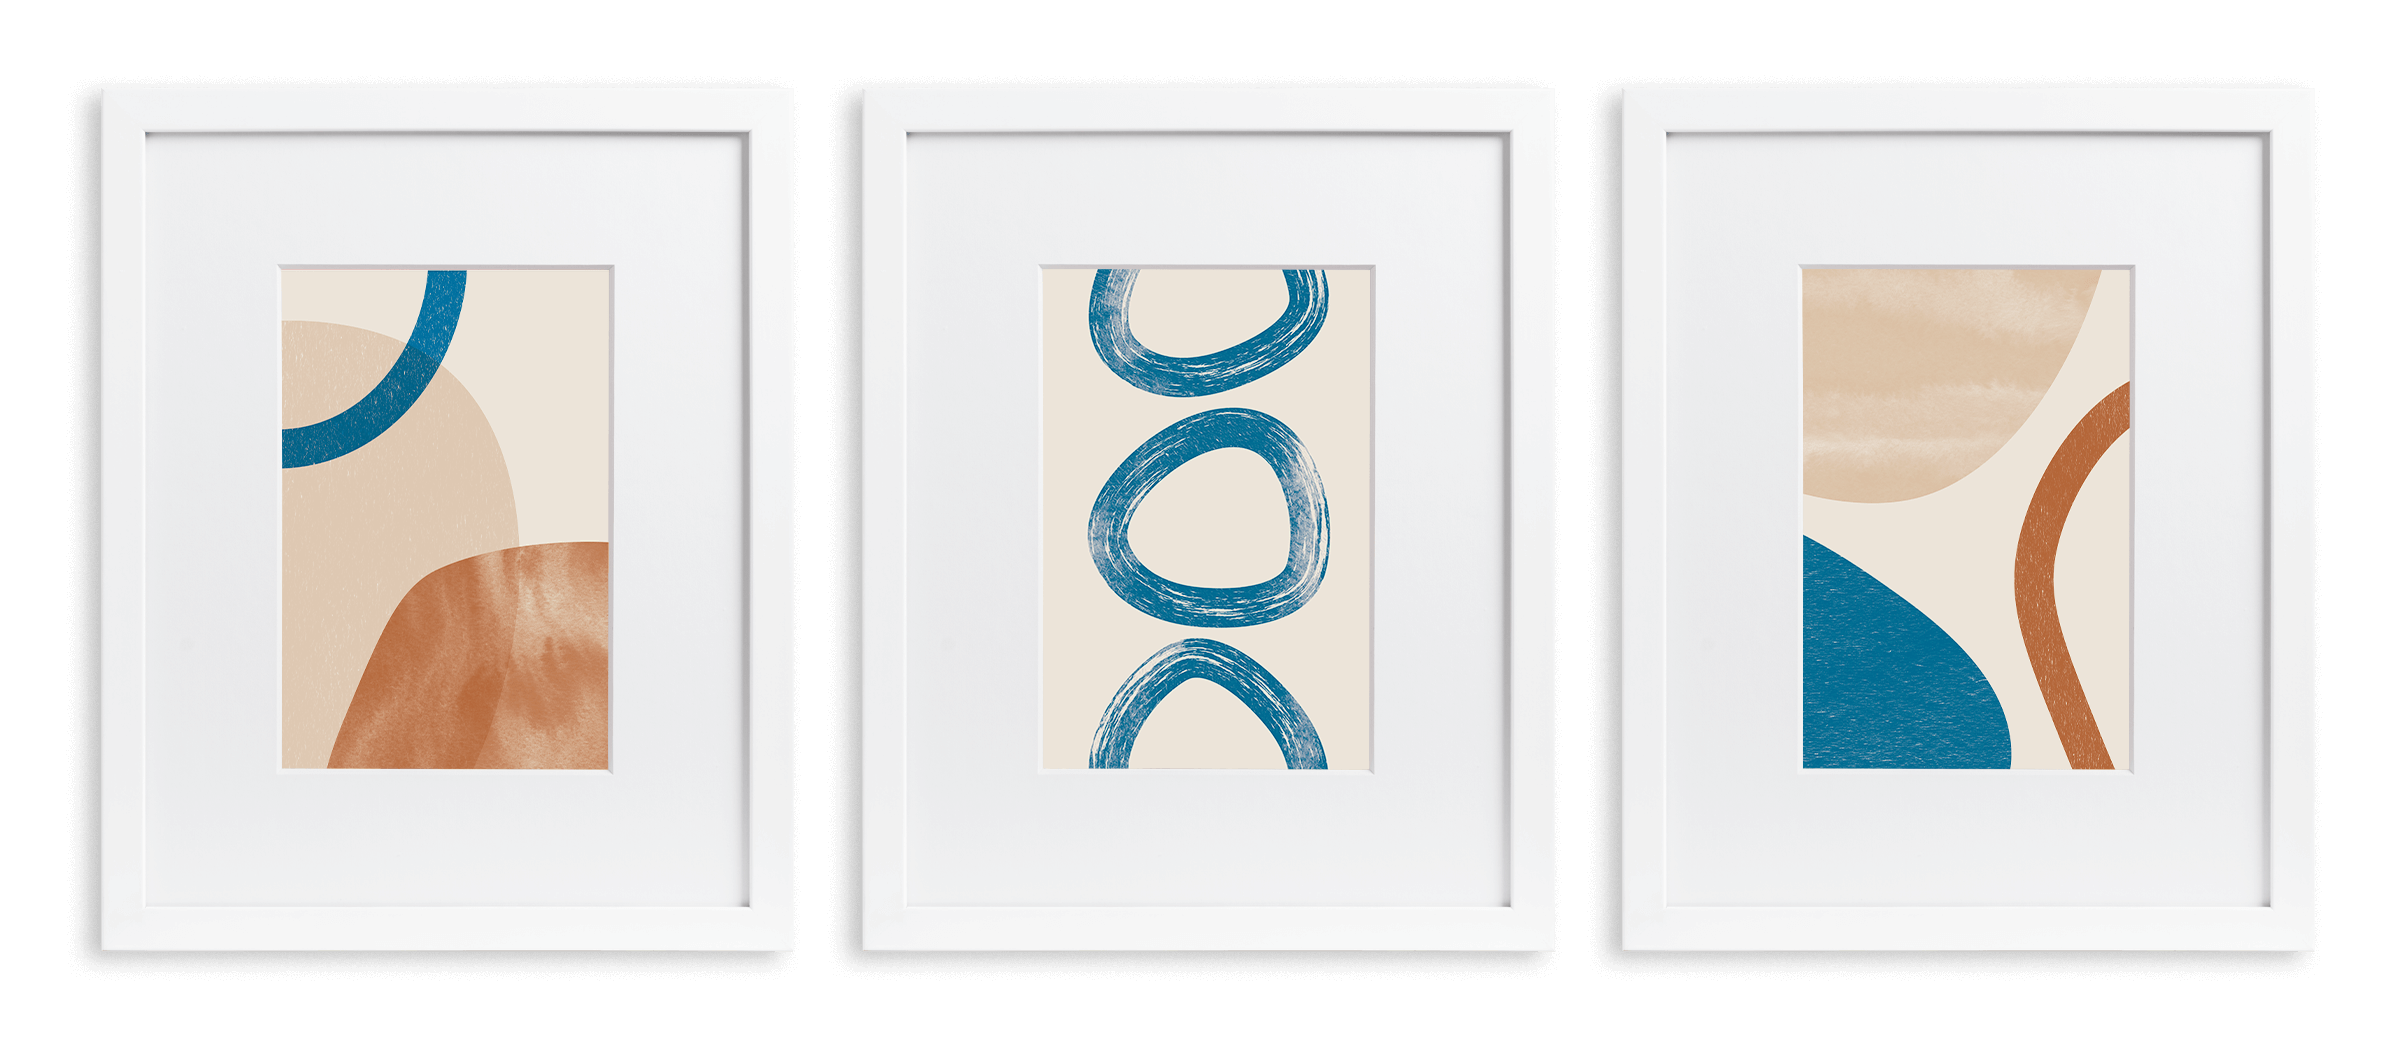 3 white frames with a mix of circular shapes in blue, tan, and orange